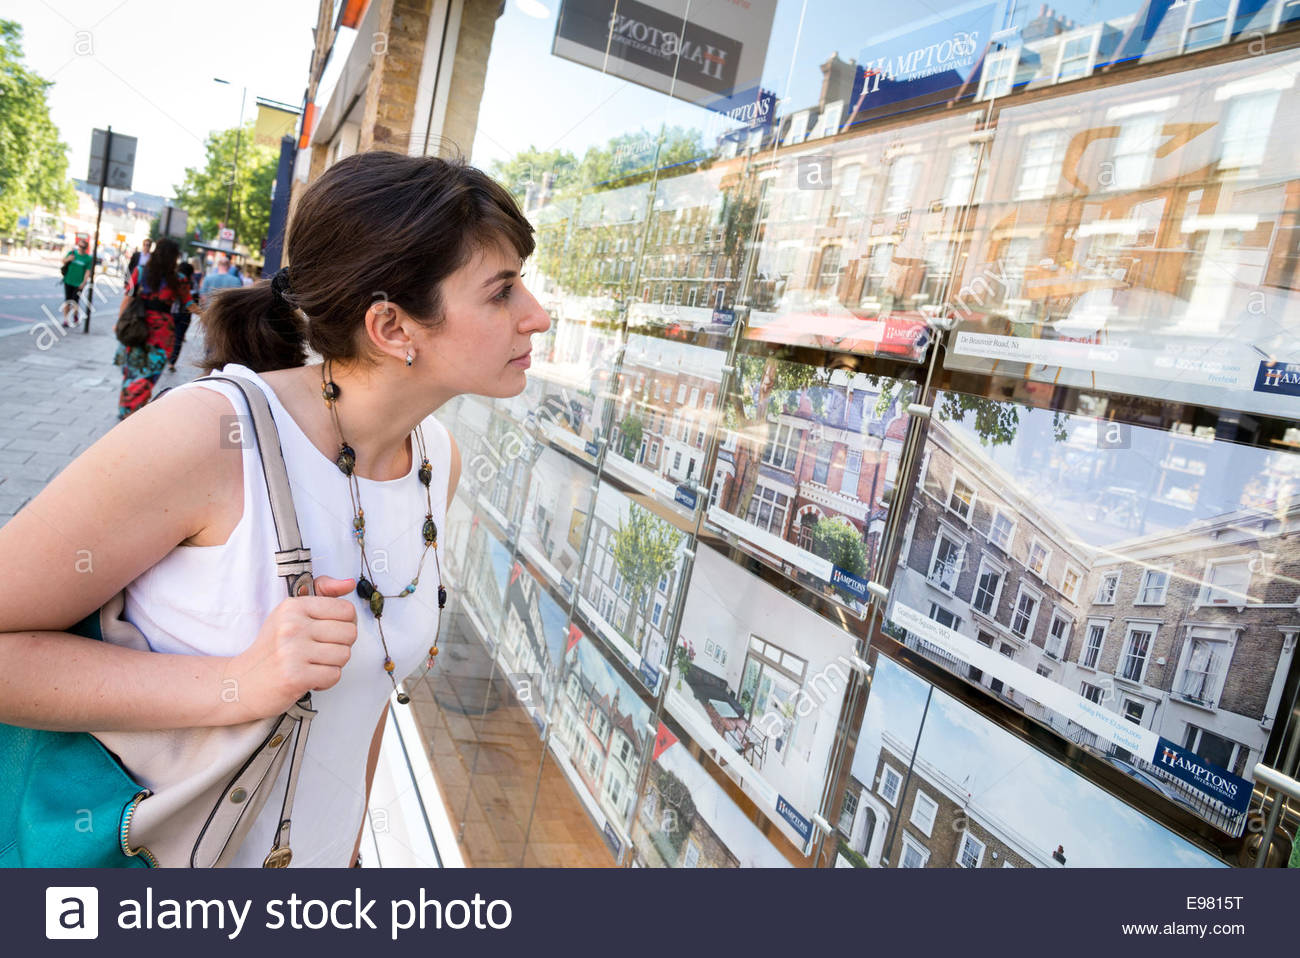 Young woman looking at houses for sale in estate agent window, Islington, London, England, UK - Stock Image